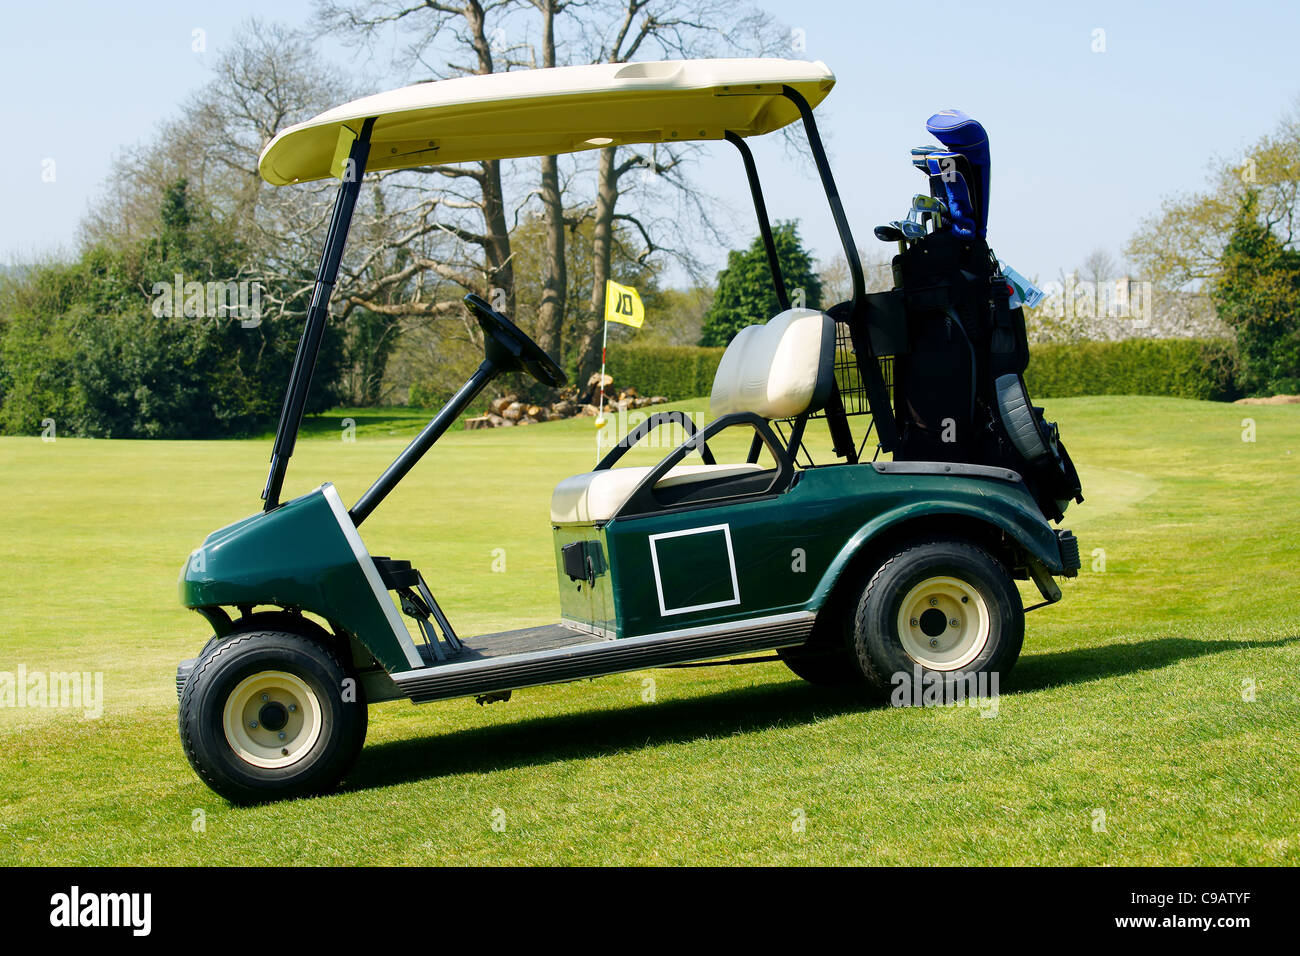 Golf Cart Stock Photos & Golf Cart Stock Images - Alamy Upholstery For Golf Carts Html on upholstery for trucks, upholstery for vehicles, upholstery for tractors,